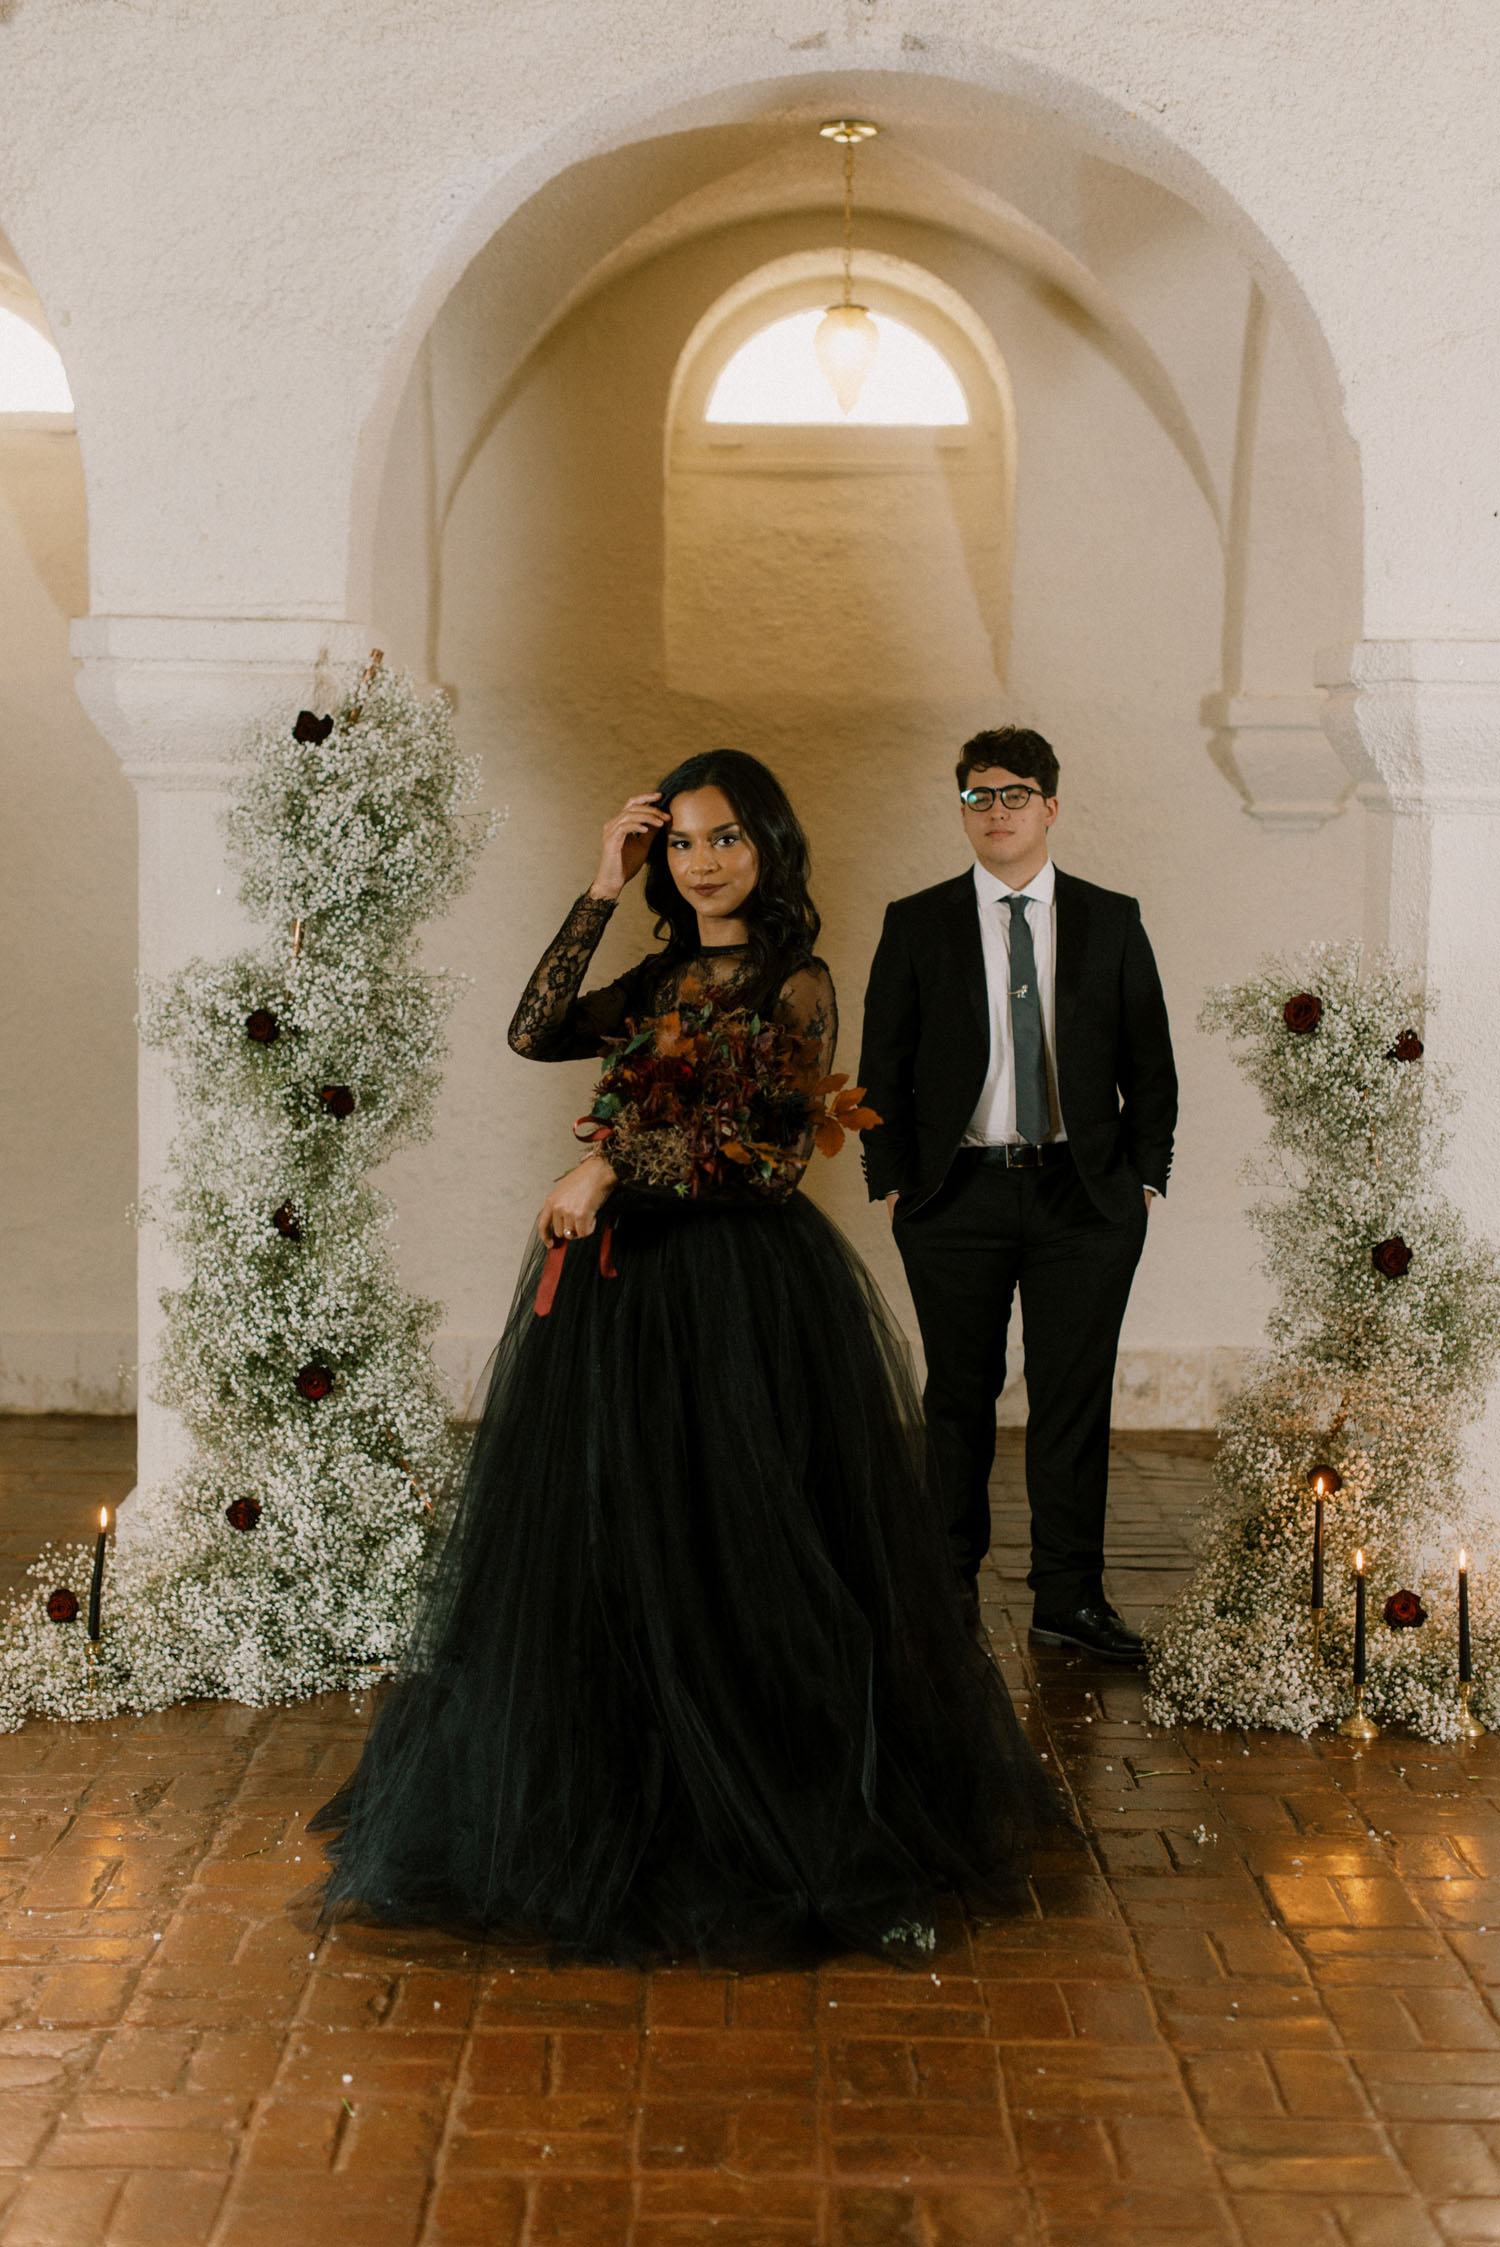 Addams Family Inspired Wedding